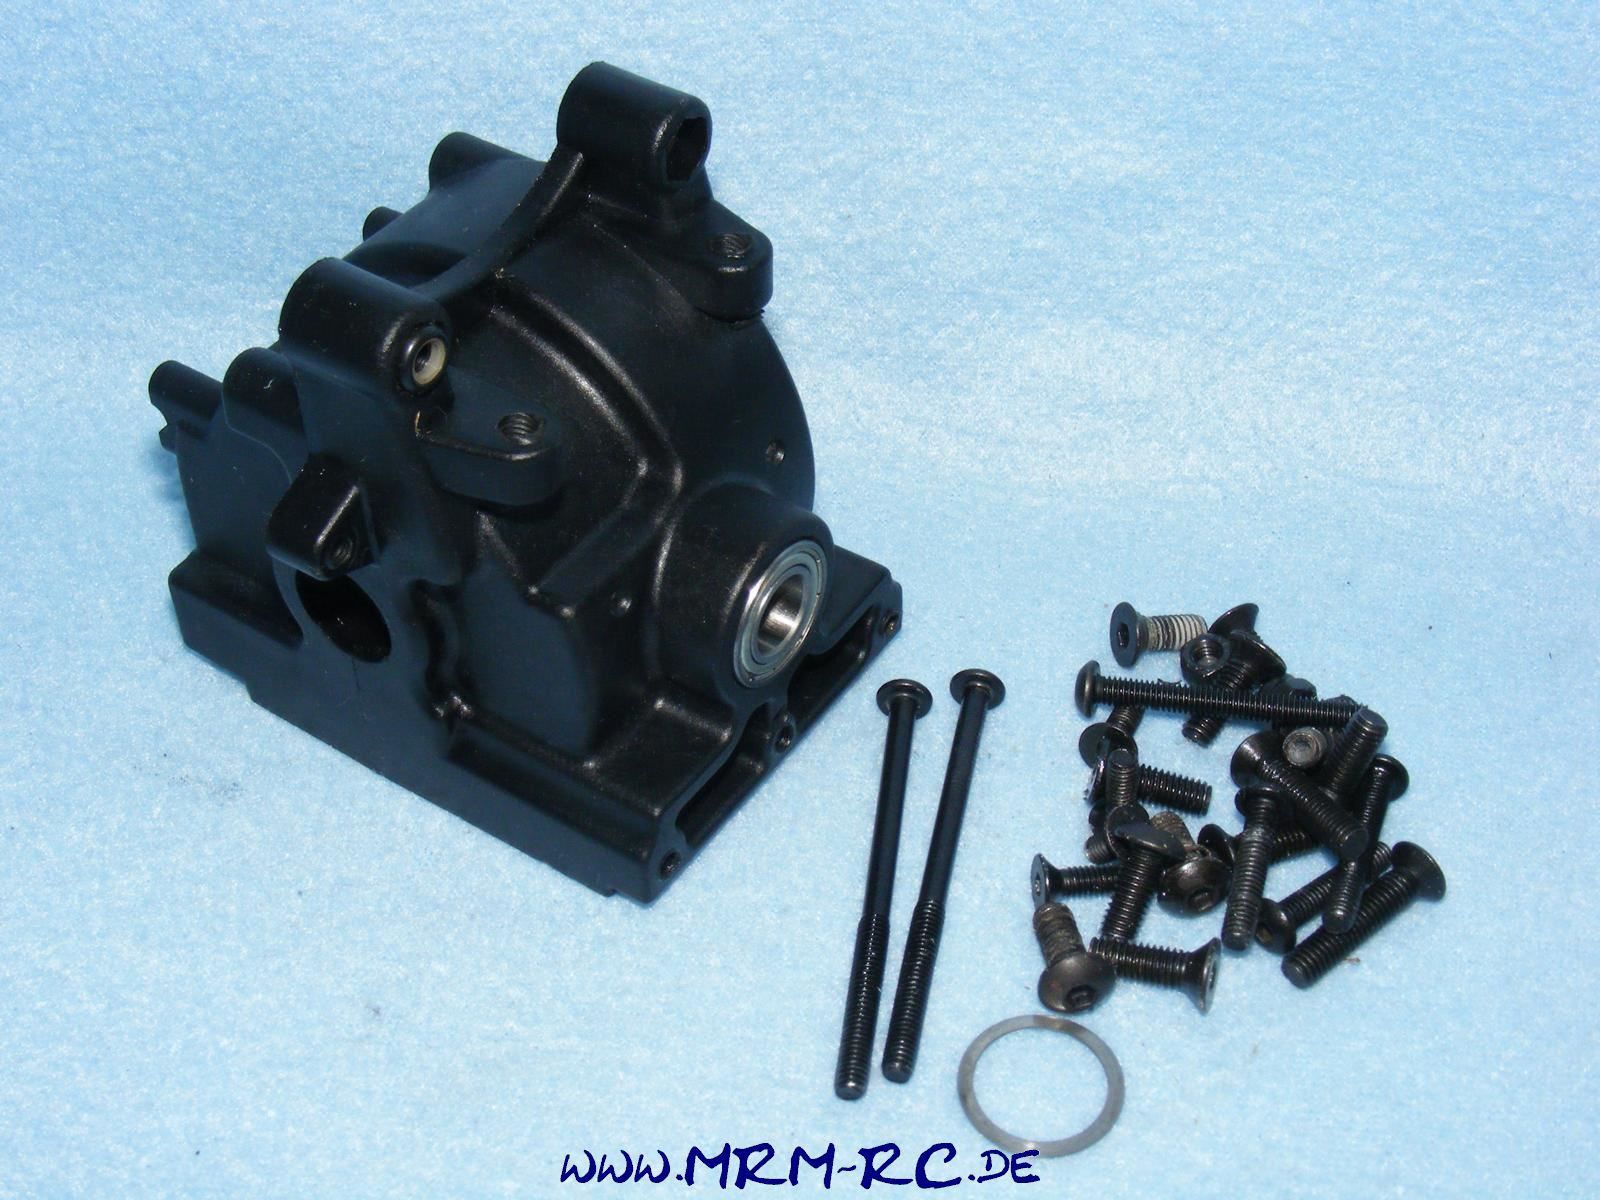 Carson Dirt Attack 500405209 Gear housing Getriebegehäuse Querlenkerhalter